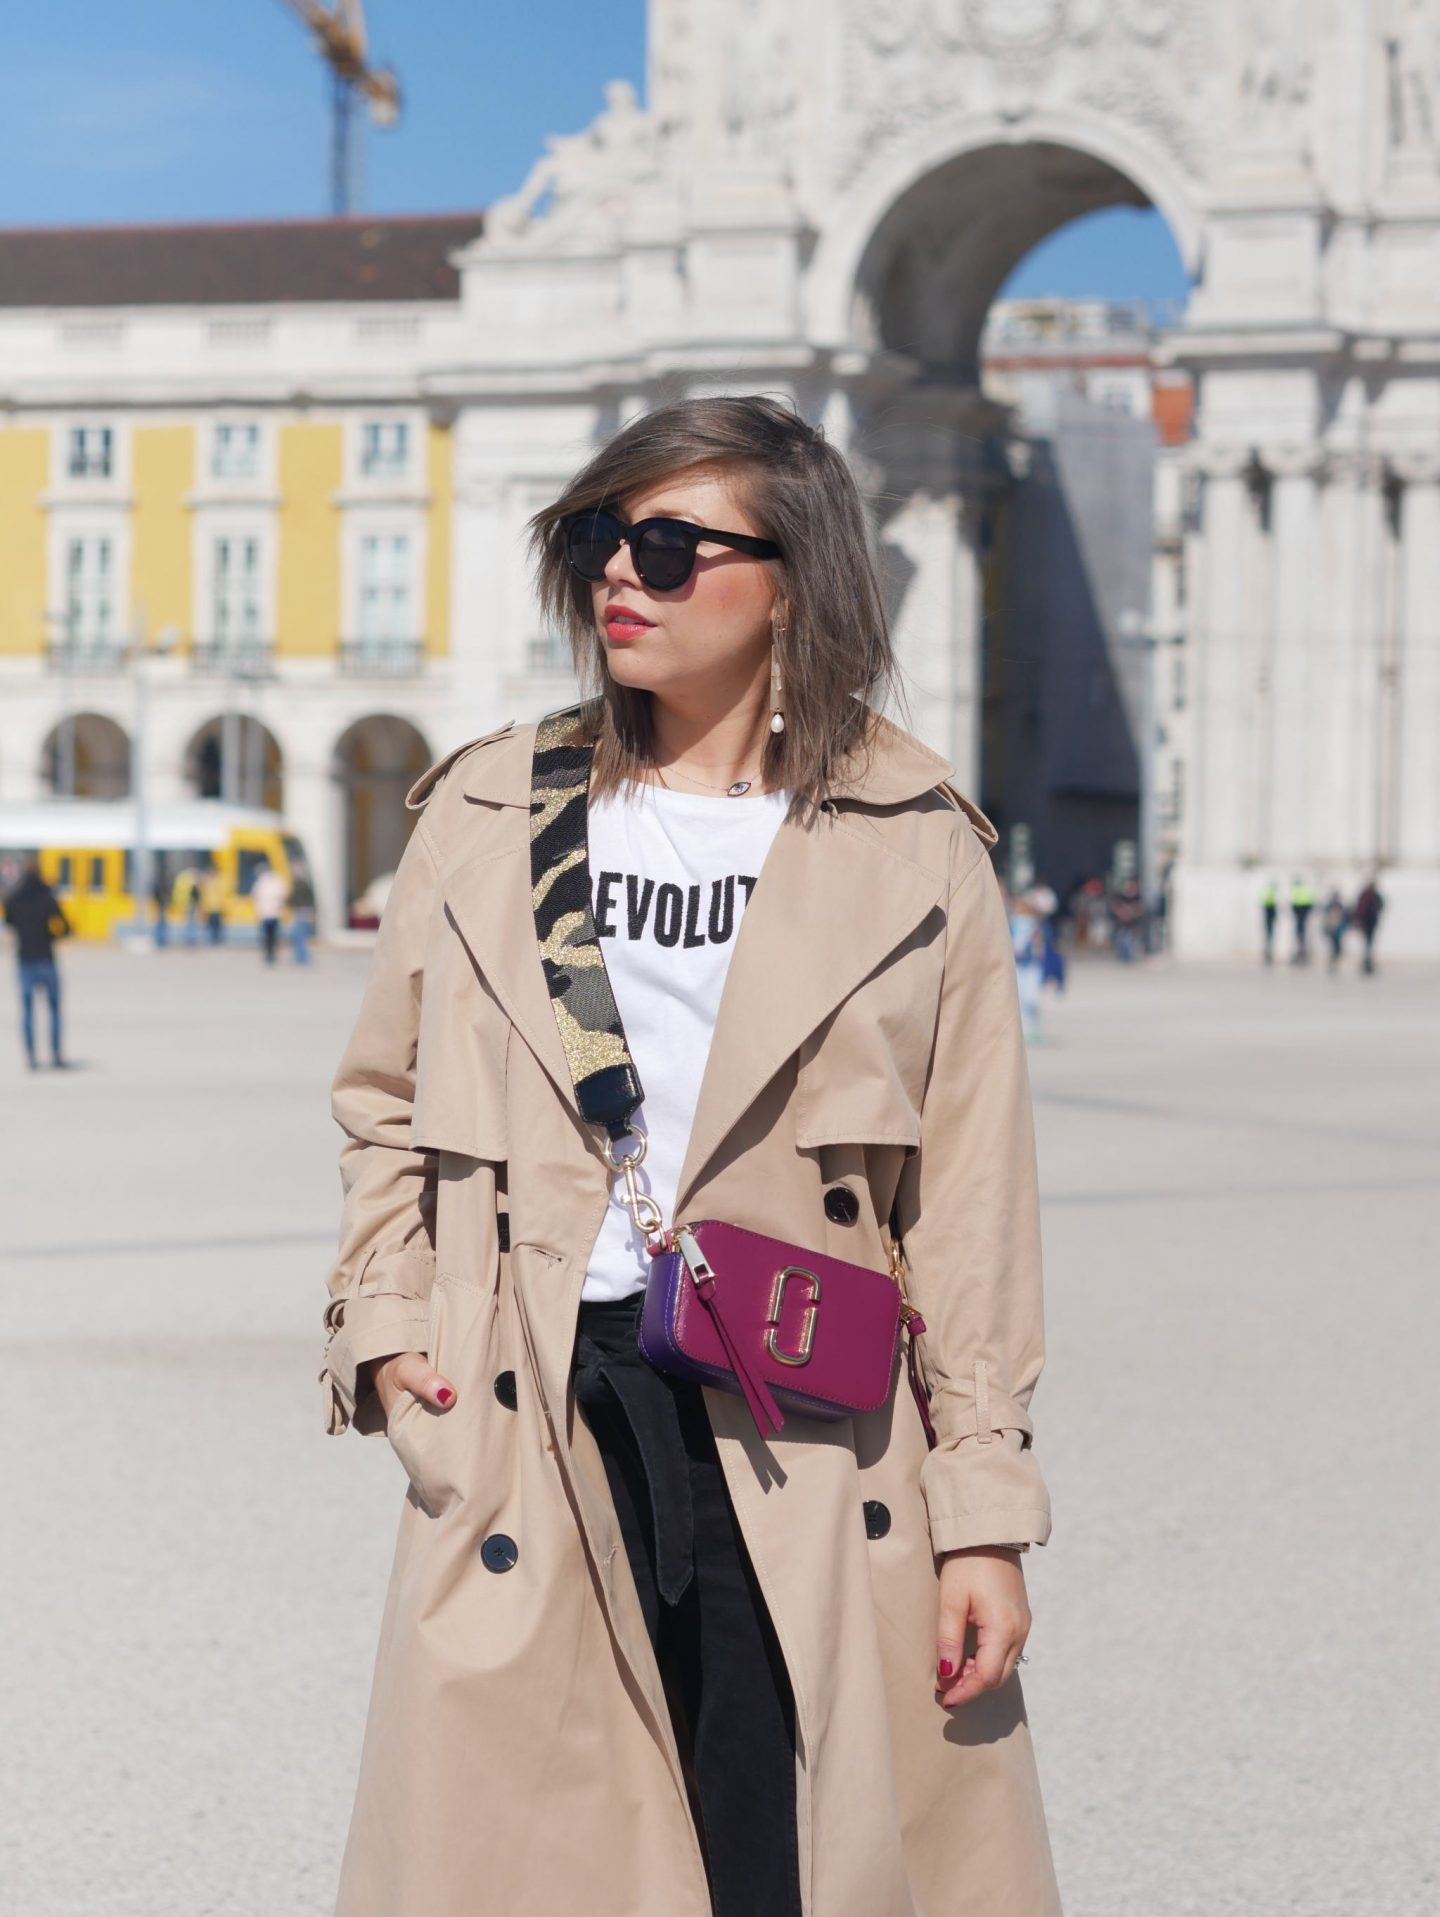 manchester fashion blogger , manchester , oversized trench , marc jacobs bag, manchester fashion bloggers